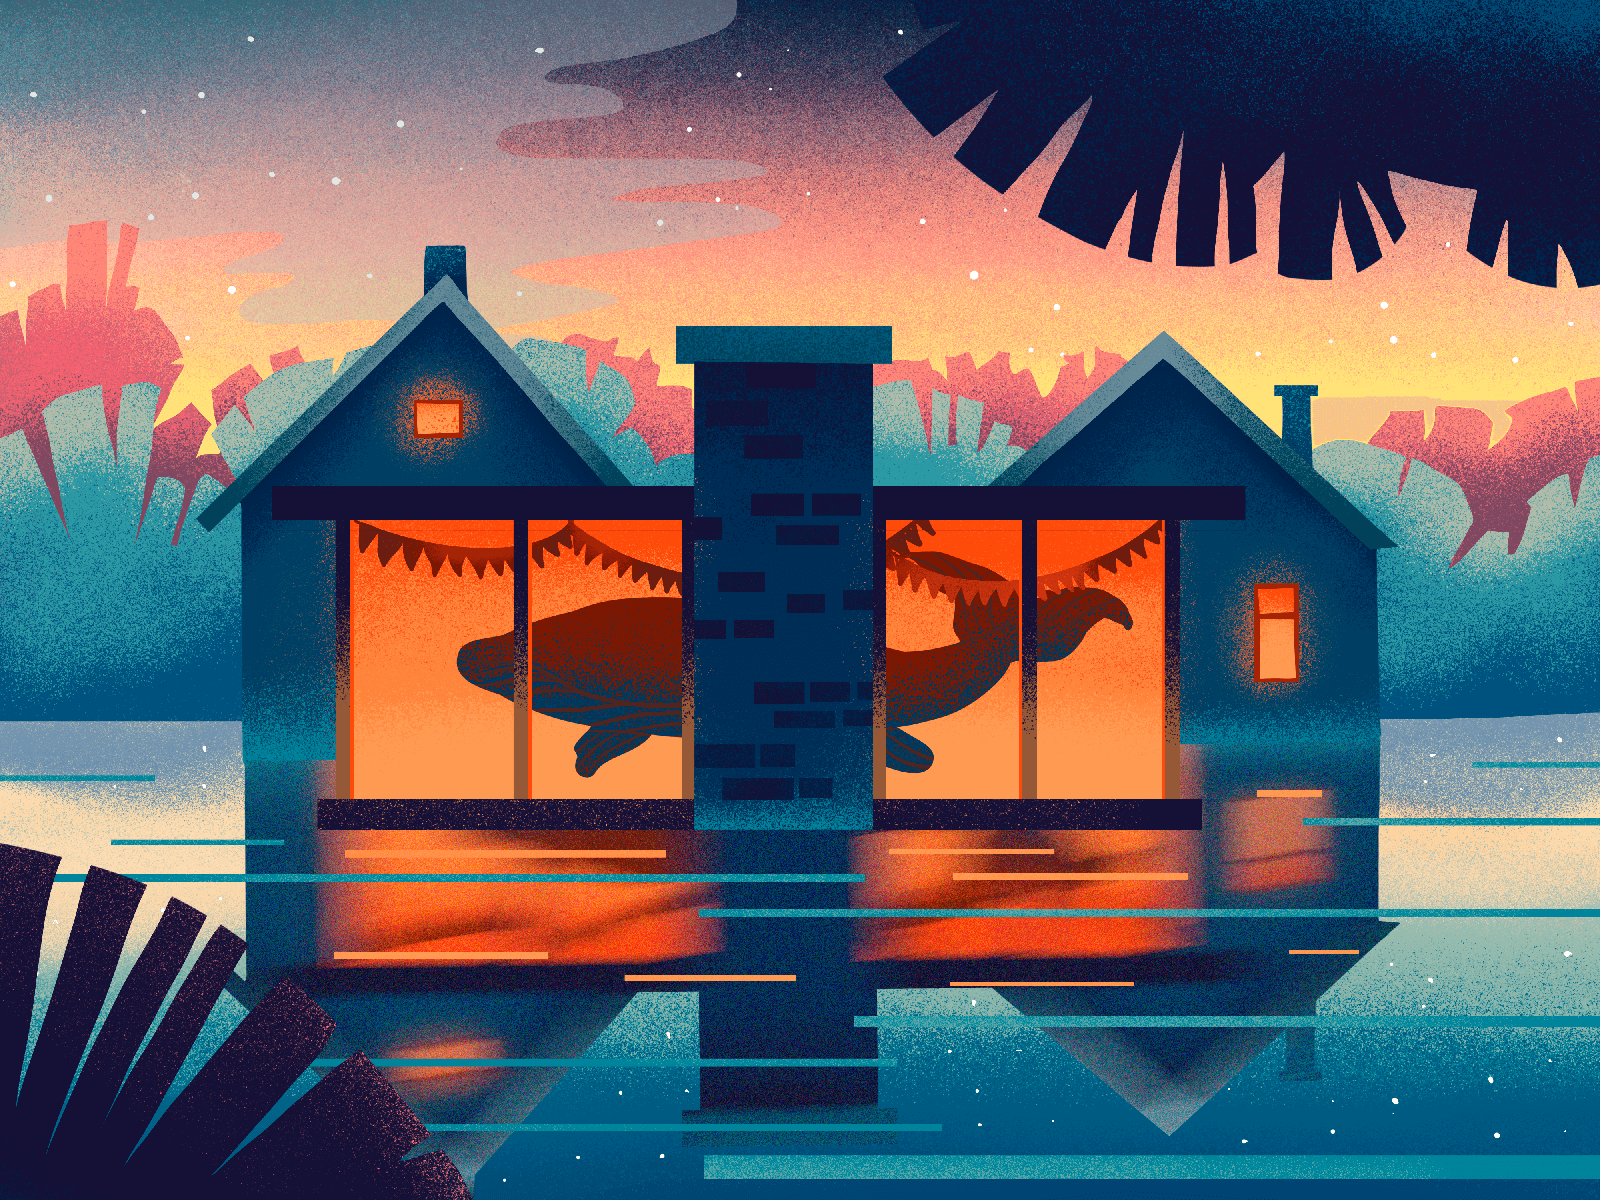 whale at home illustration